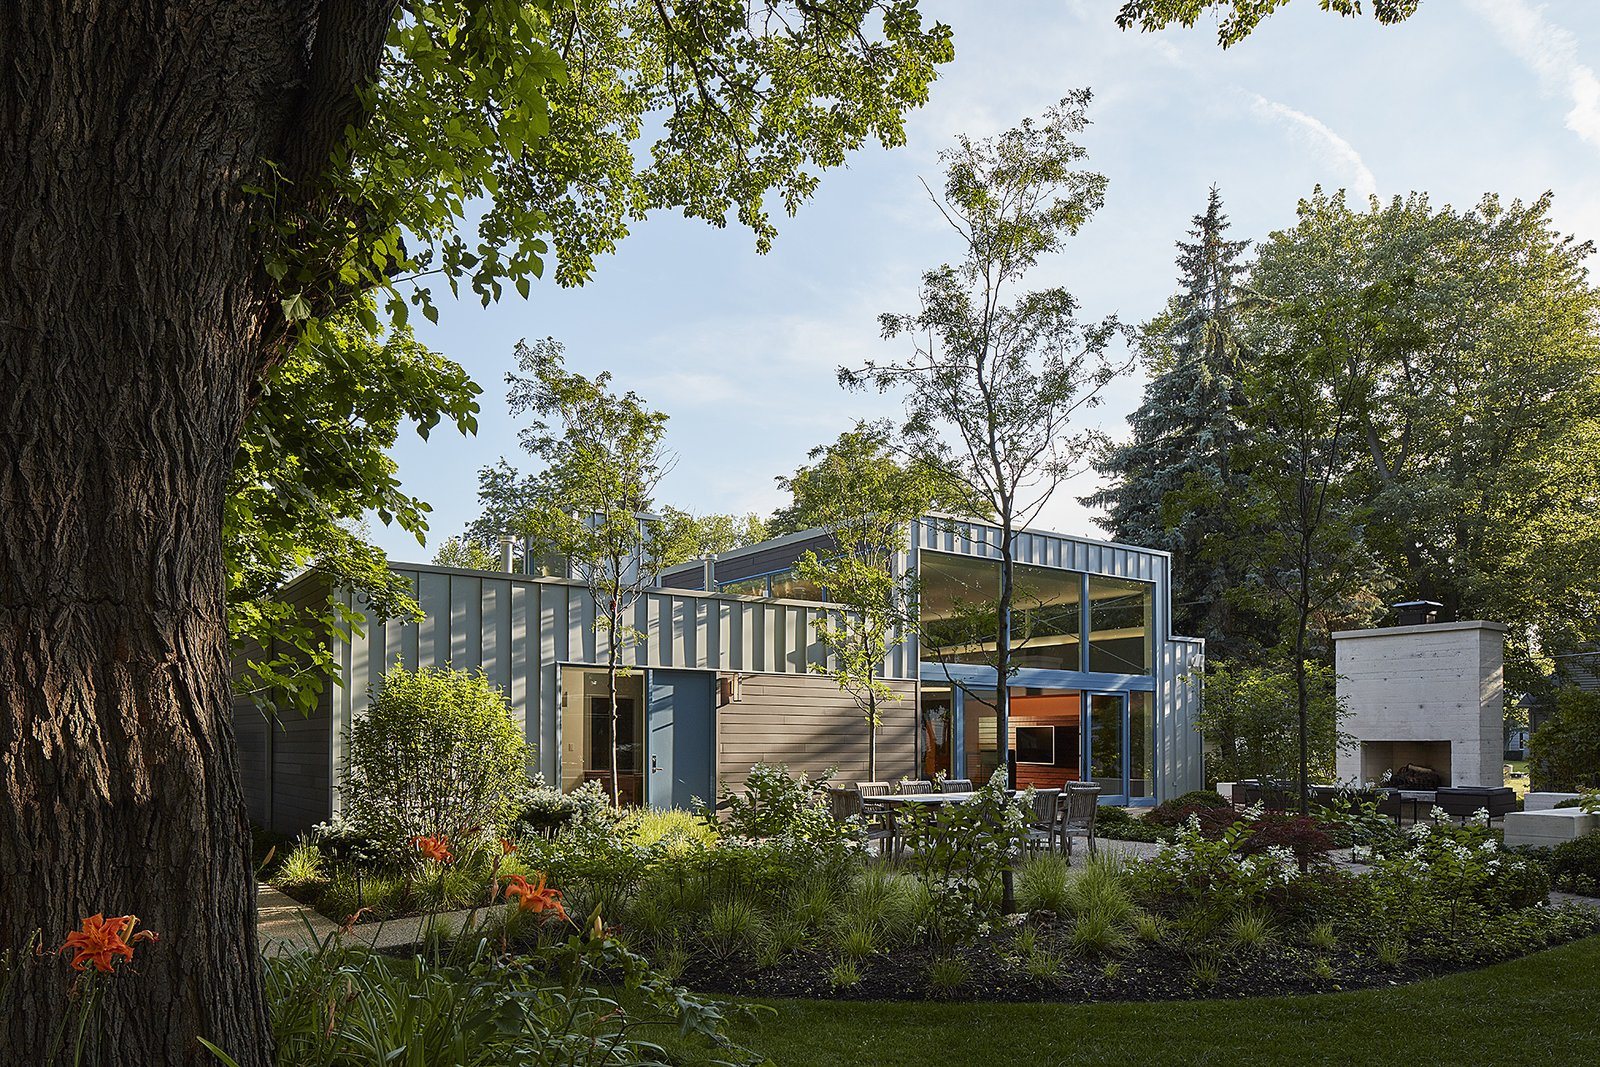 An Accessible Home Promotes a Lifetime of Well-Being For the Whole Family